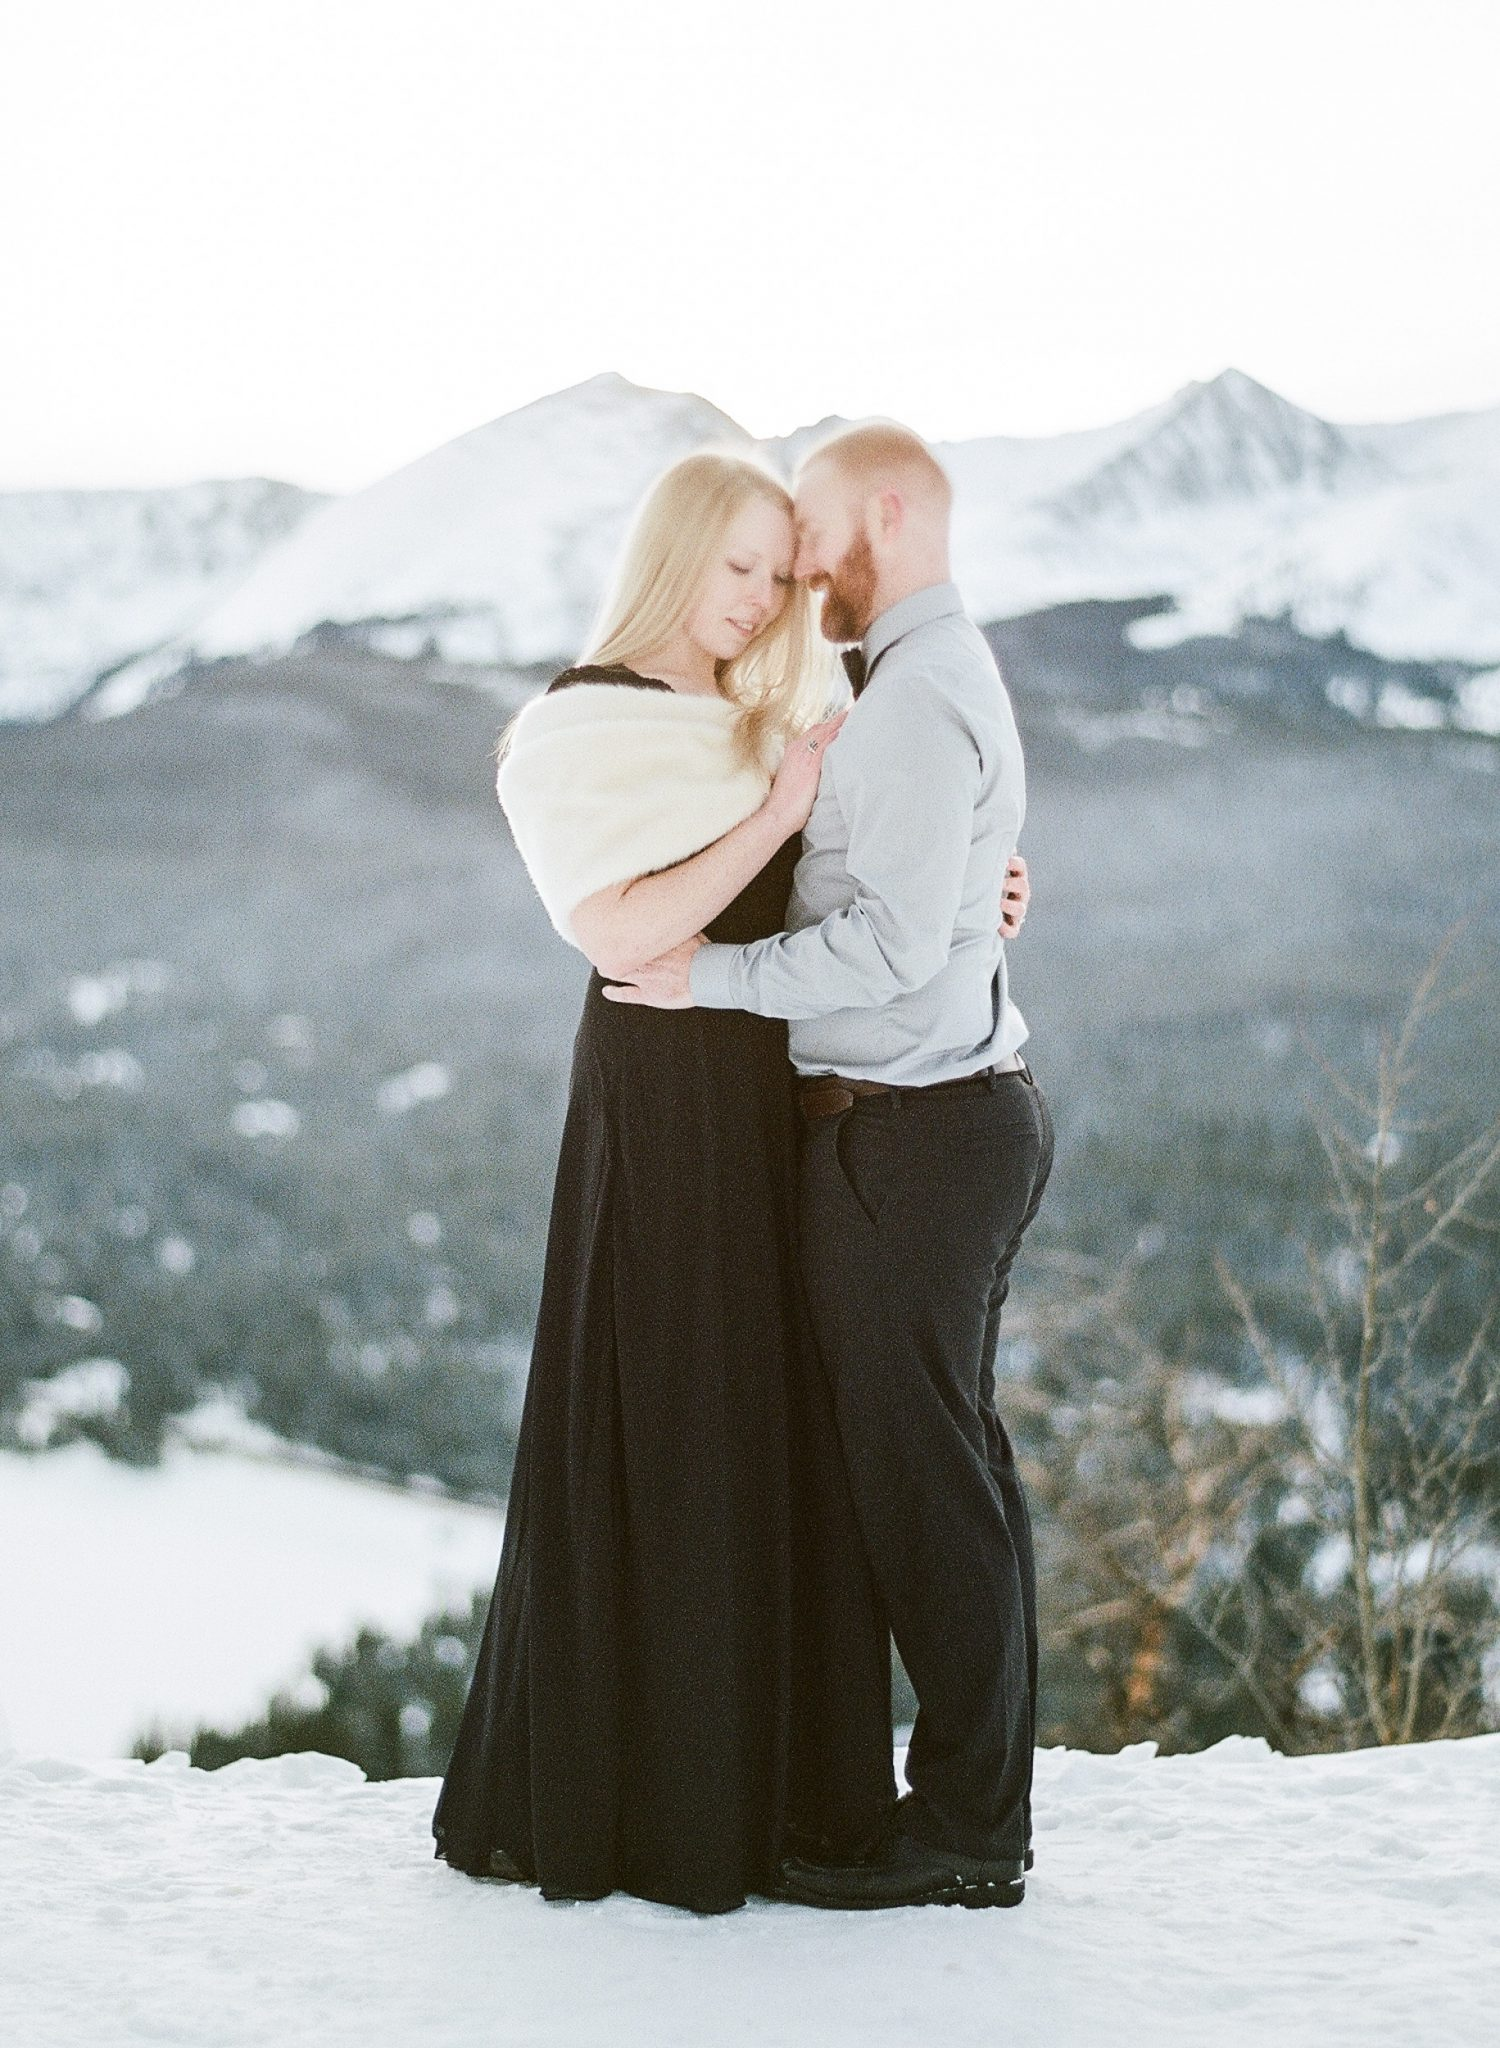 Gabbi and Ryan Breckenridge, Colorado